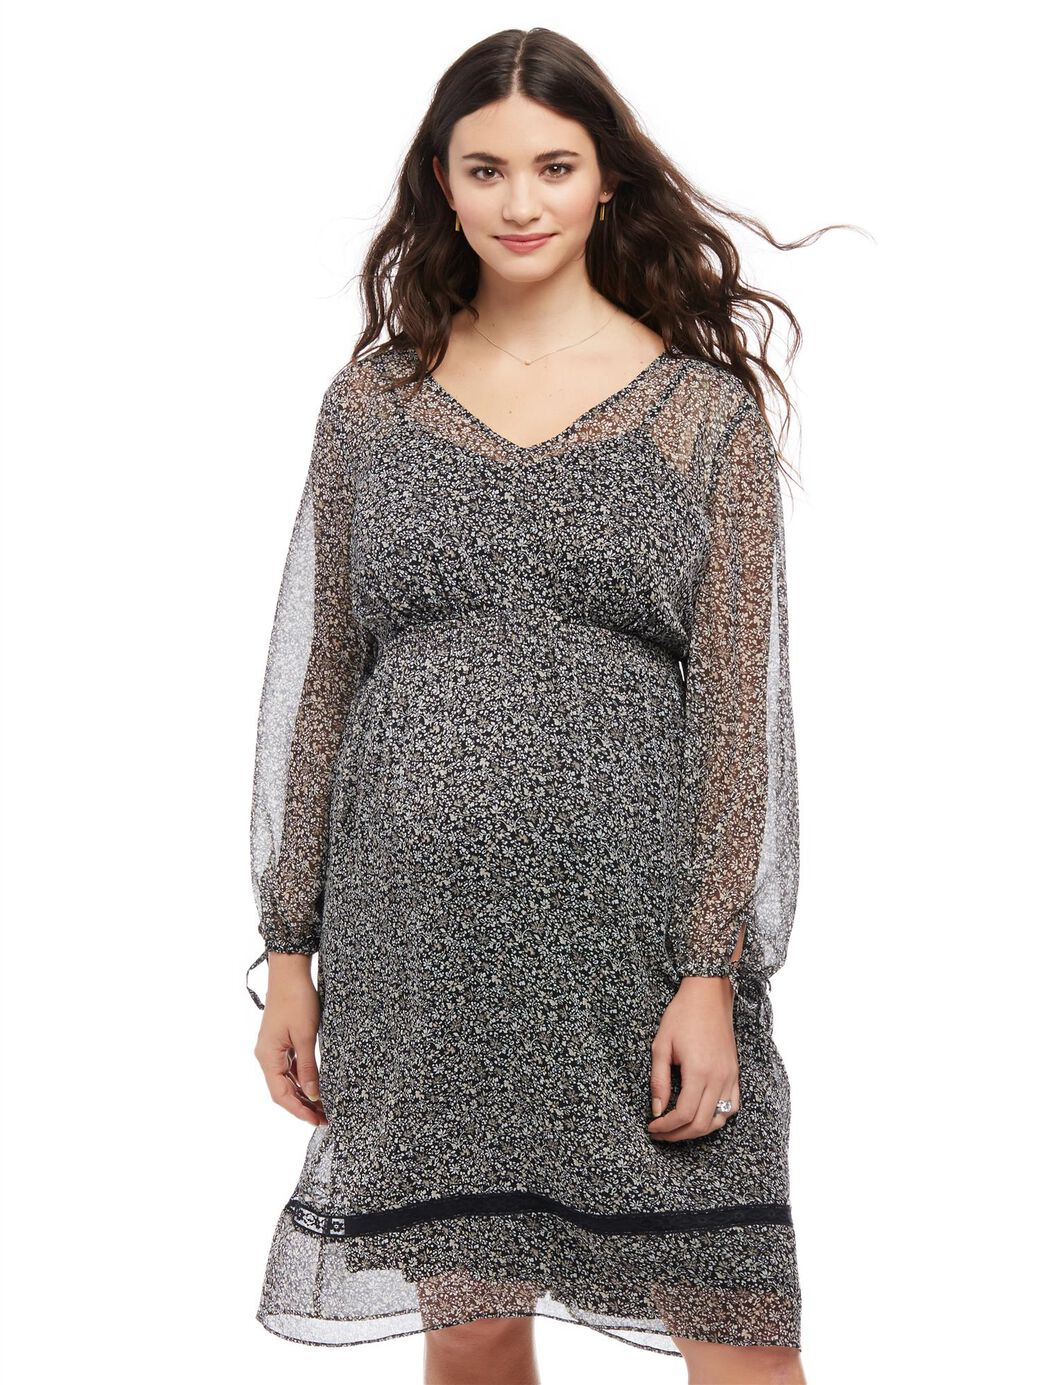 Plus Size Ditsy Floral Maternity Peasant Dress at Motherhood Maternity in Victor, NY | Tuggl